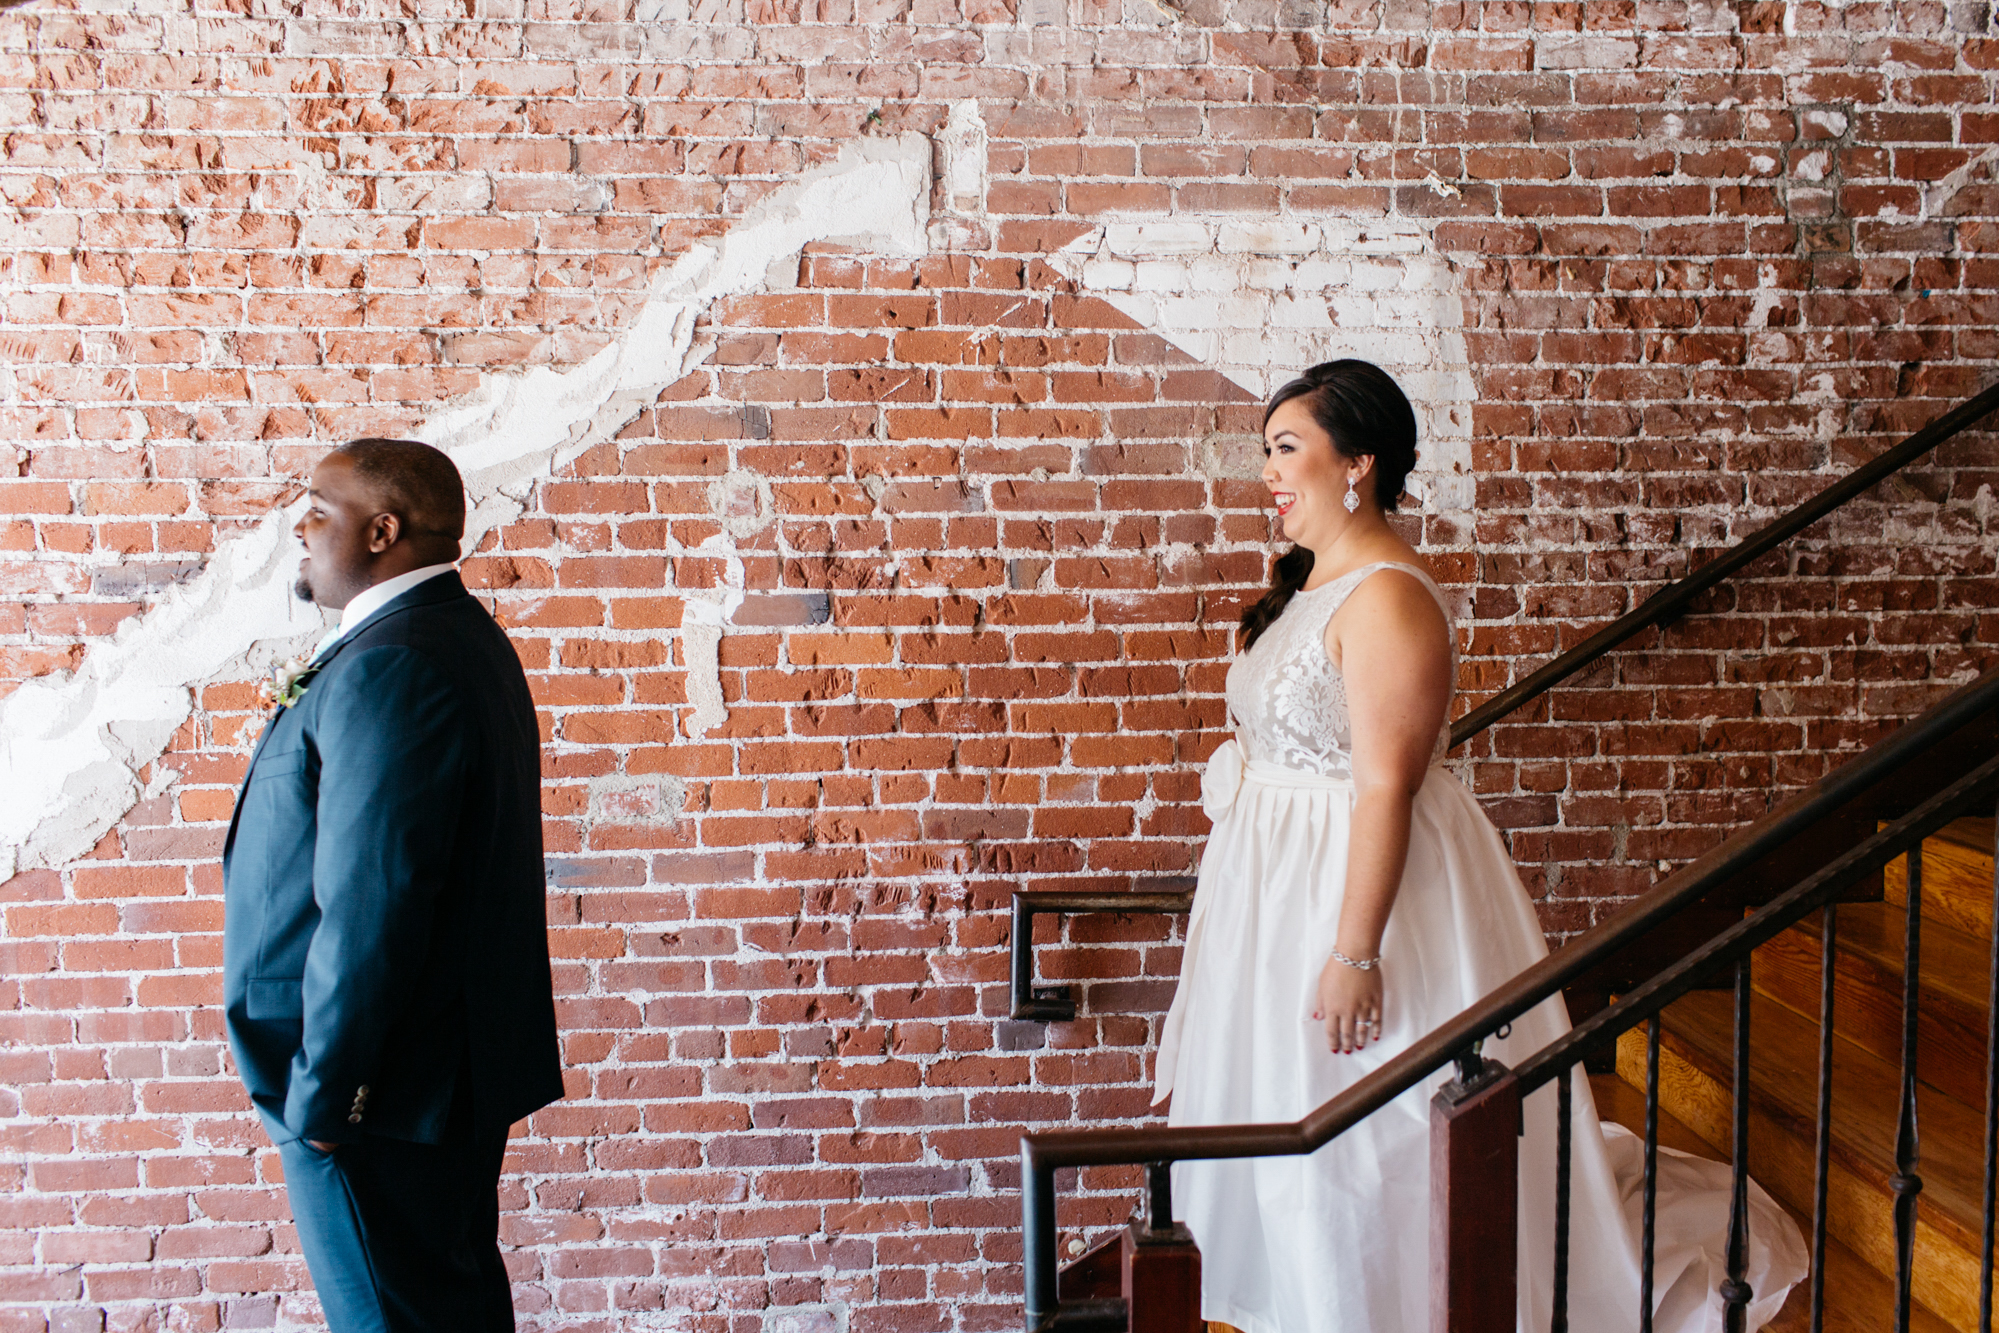 SamErica Studios - Los Angeles Wedding Photographer - The Loft on Pine-5.jpg